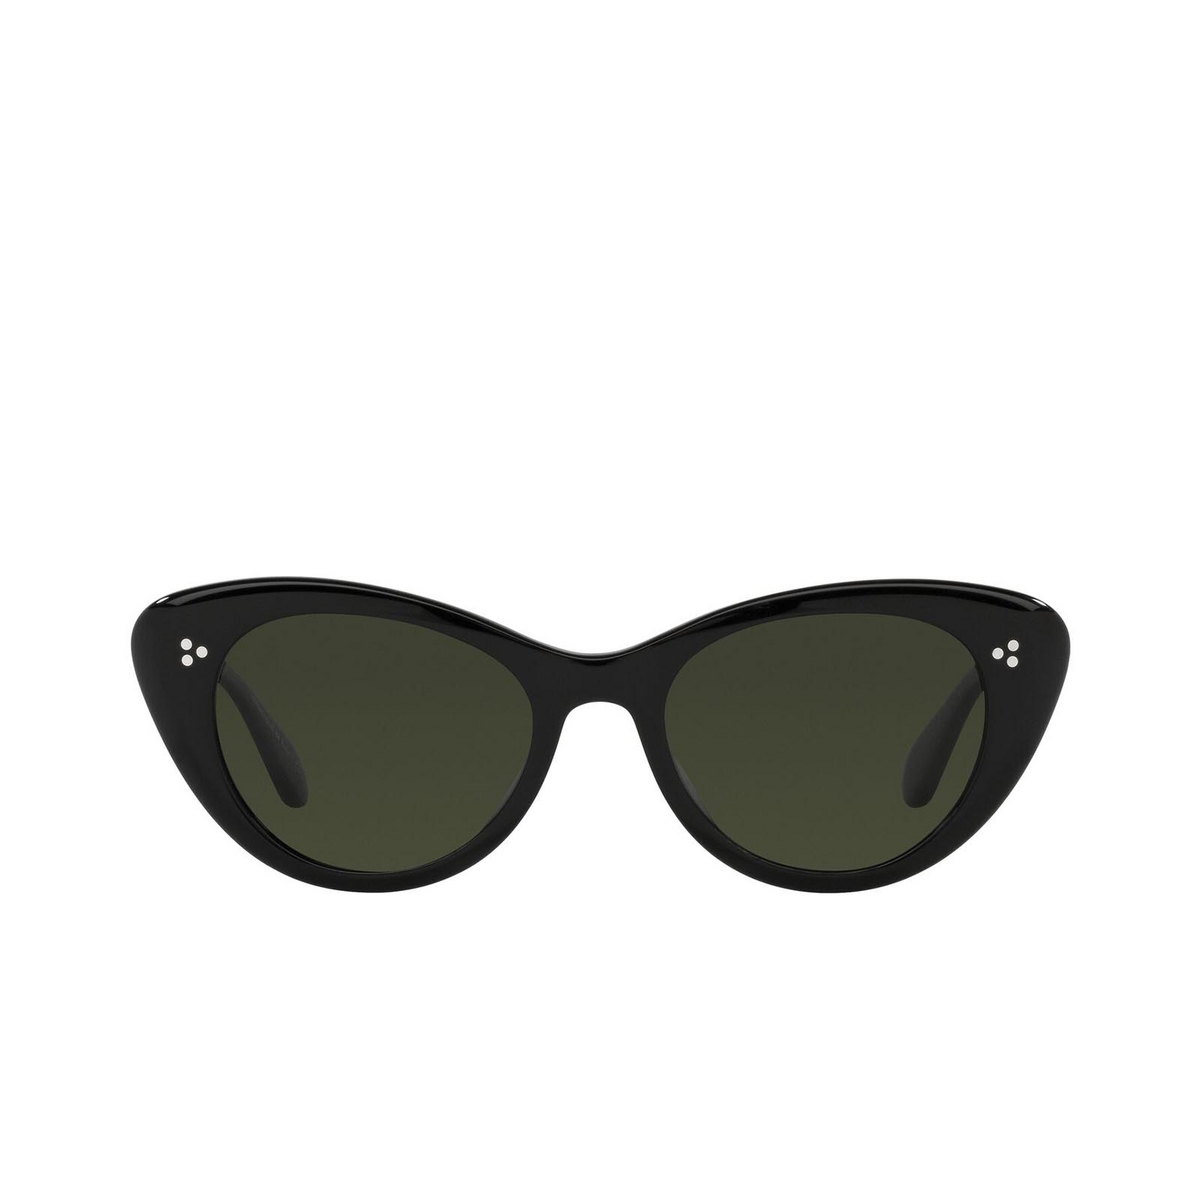 Oliver Peoples® Butterfly Sunglasses: Rishell Sun OV5415SU color Black 1005P1 - front view.